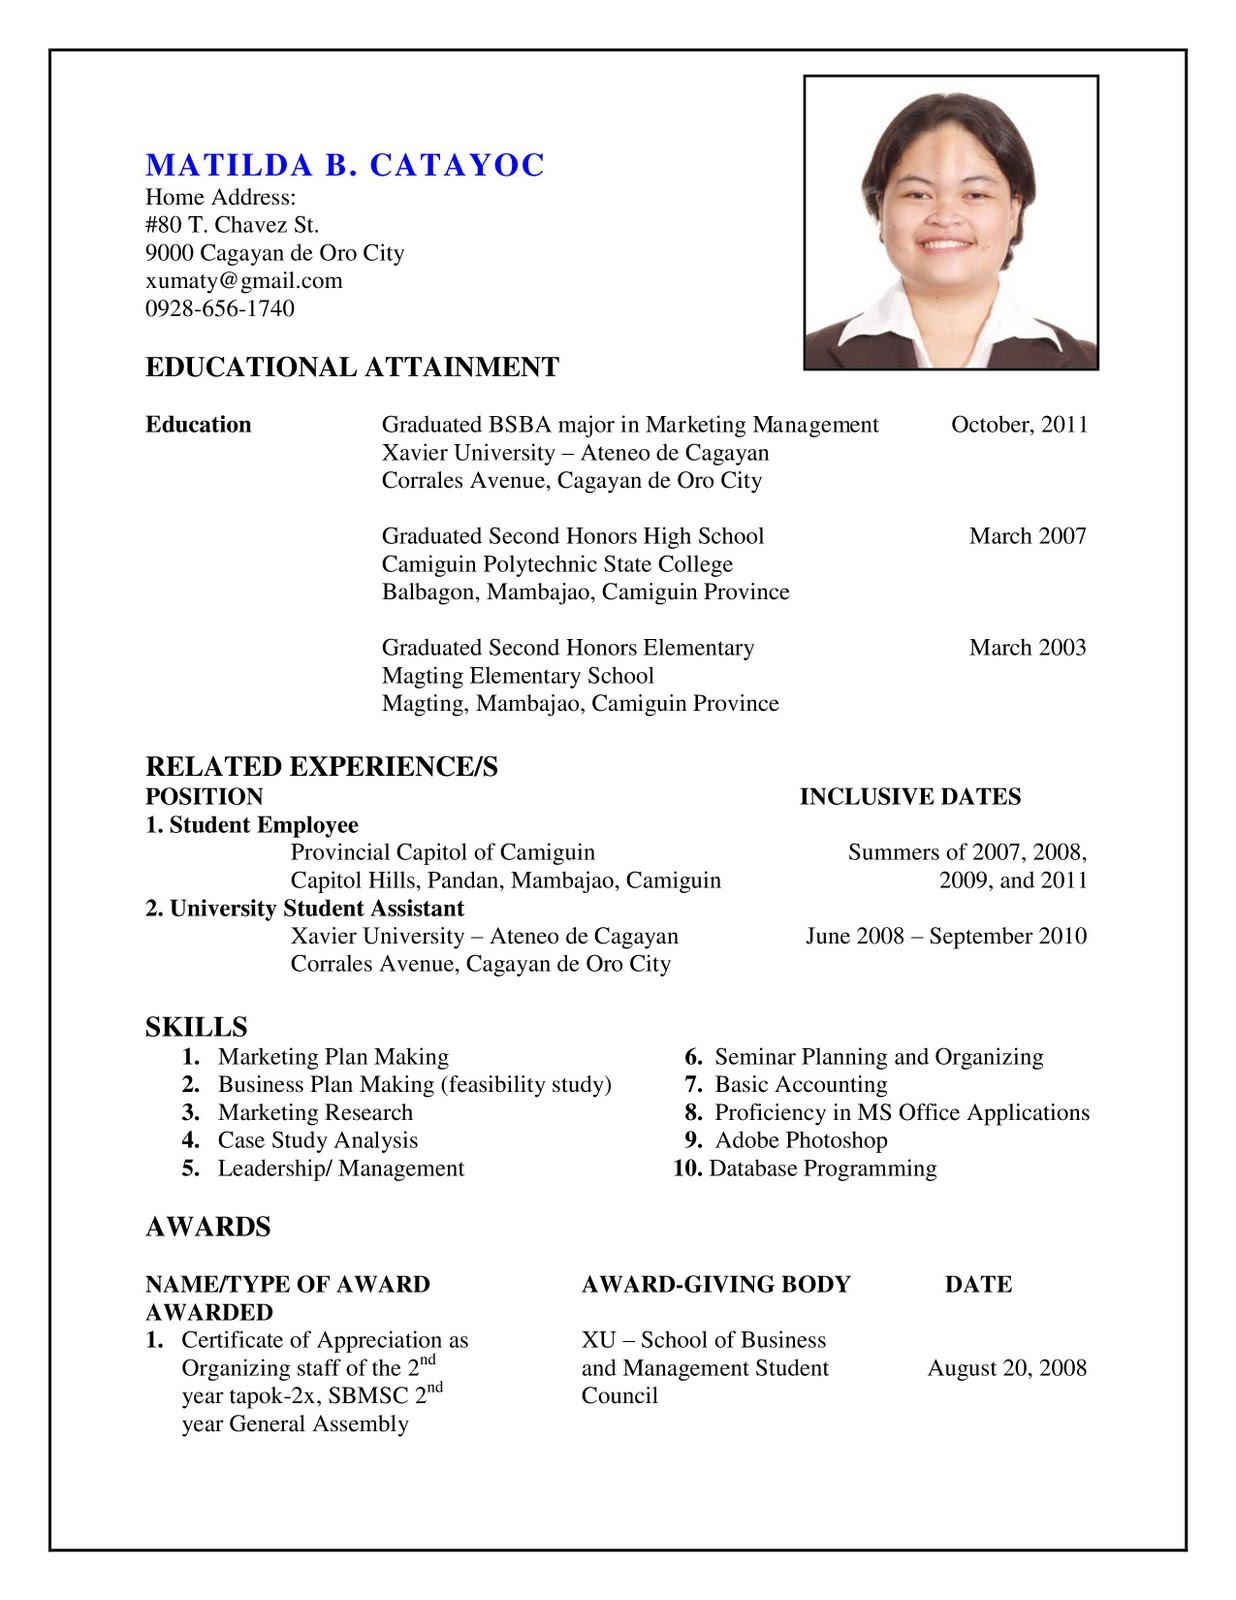 create a resume for me